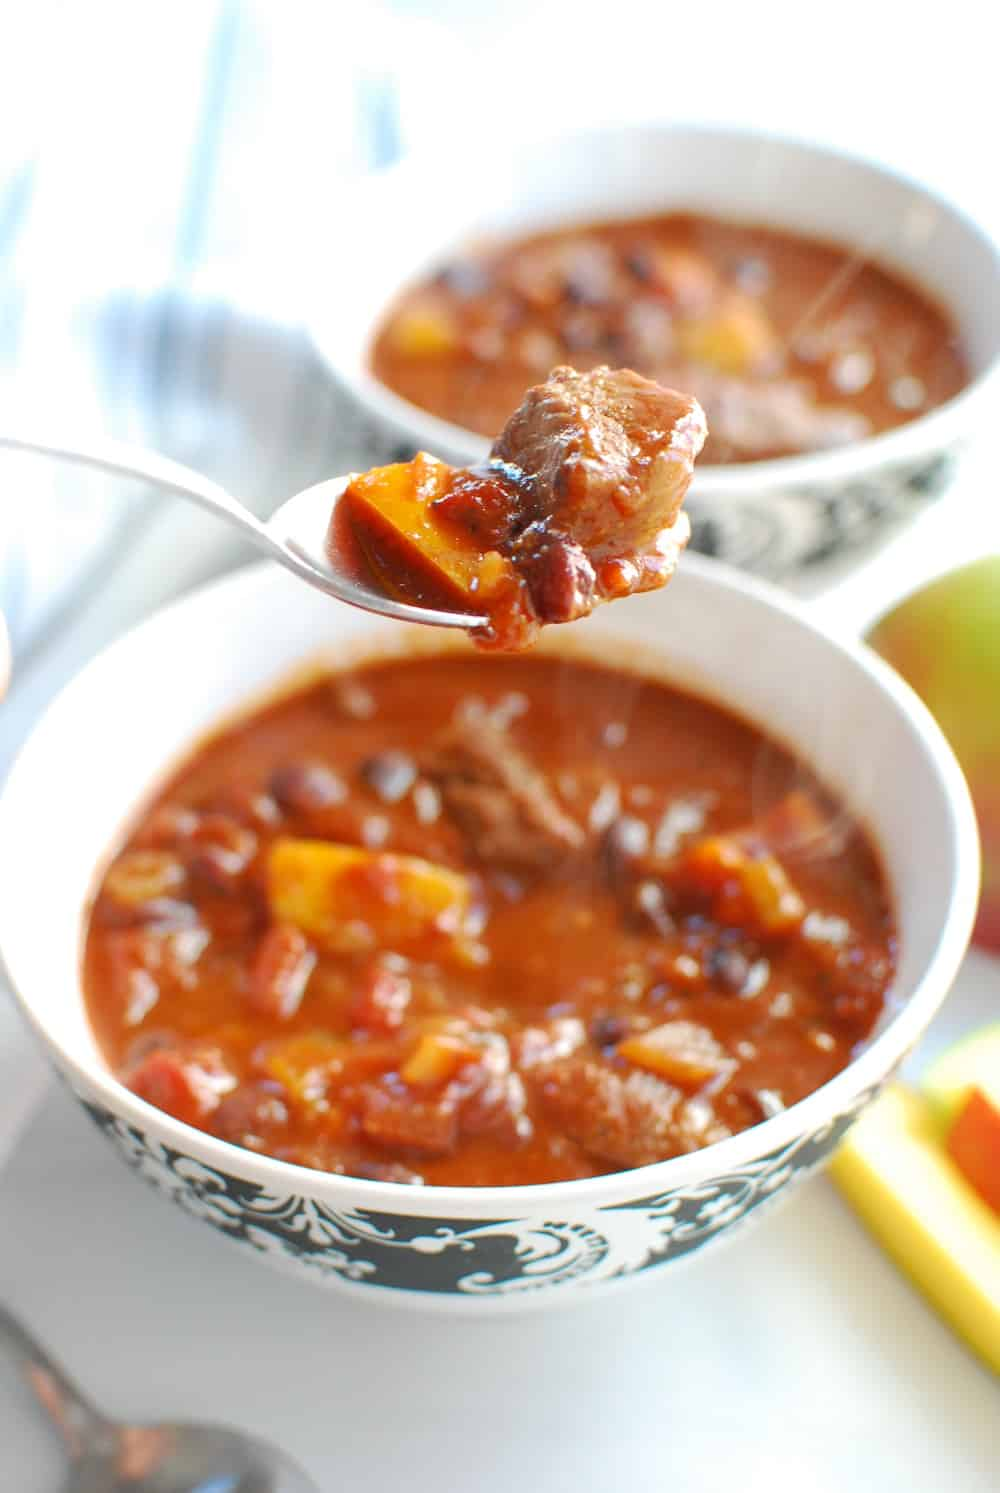 a spoonful of steak mango chili